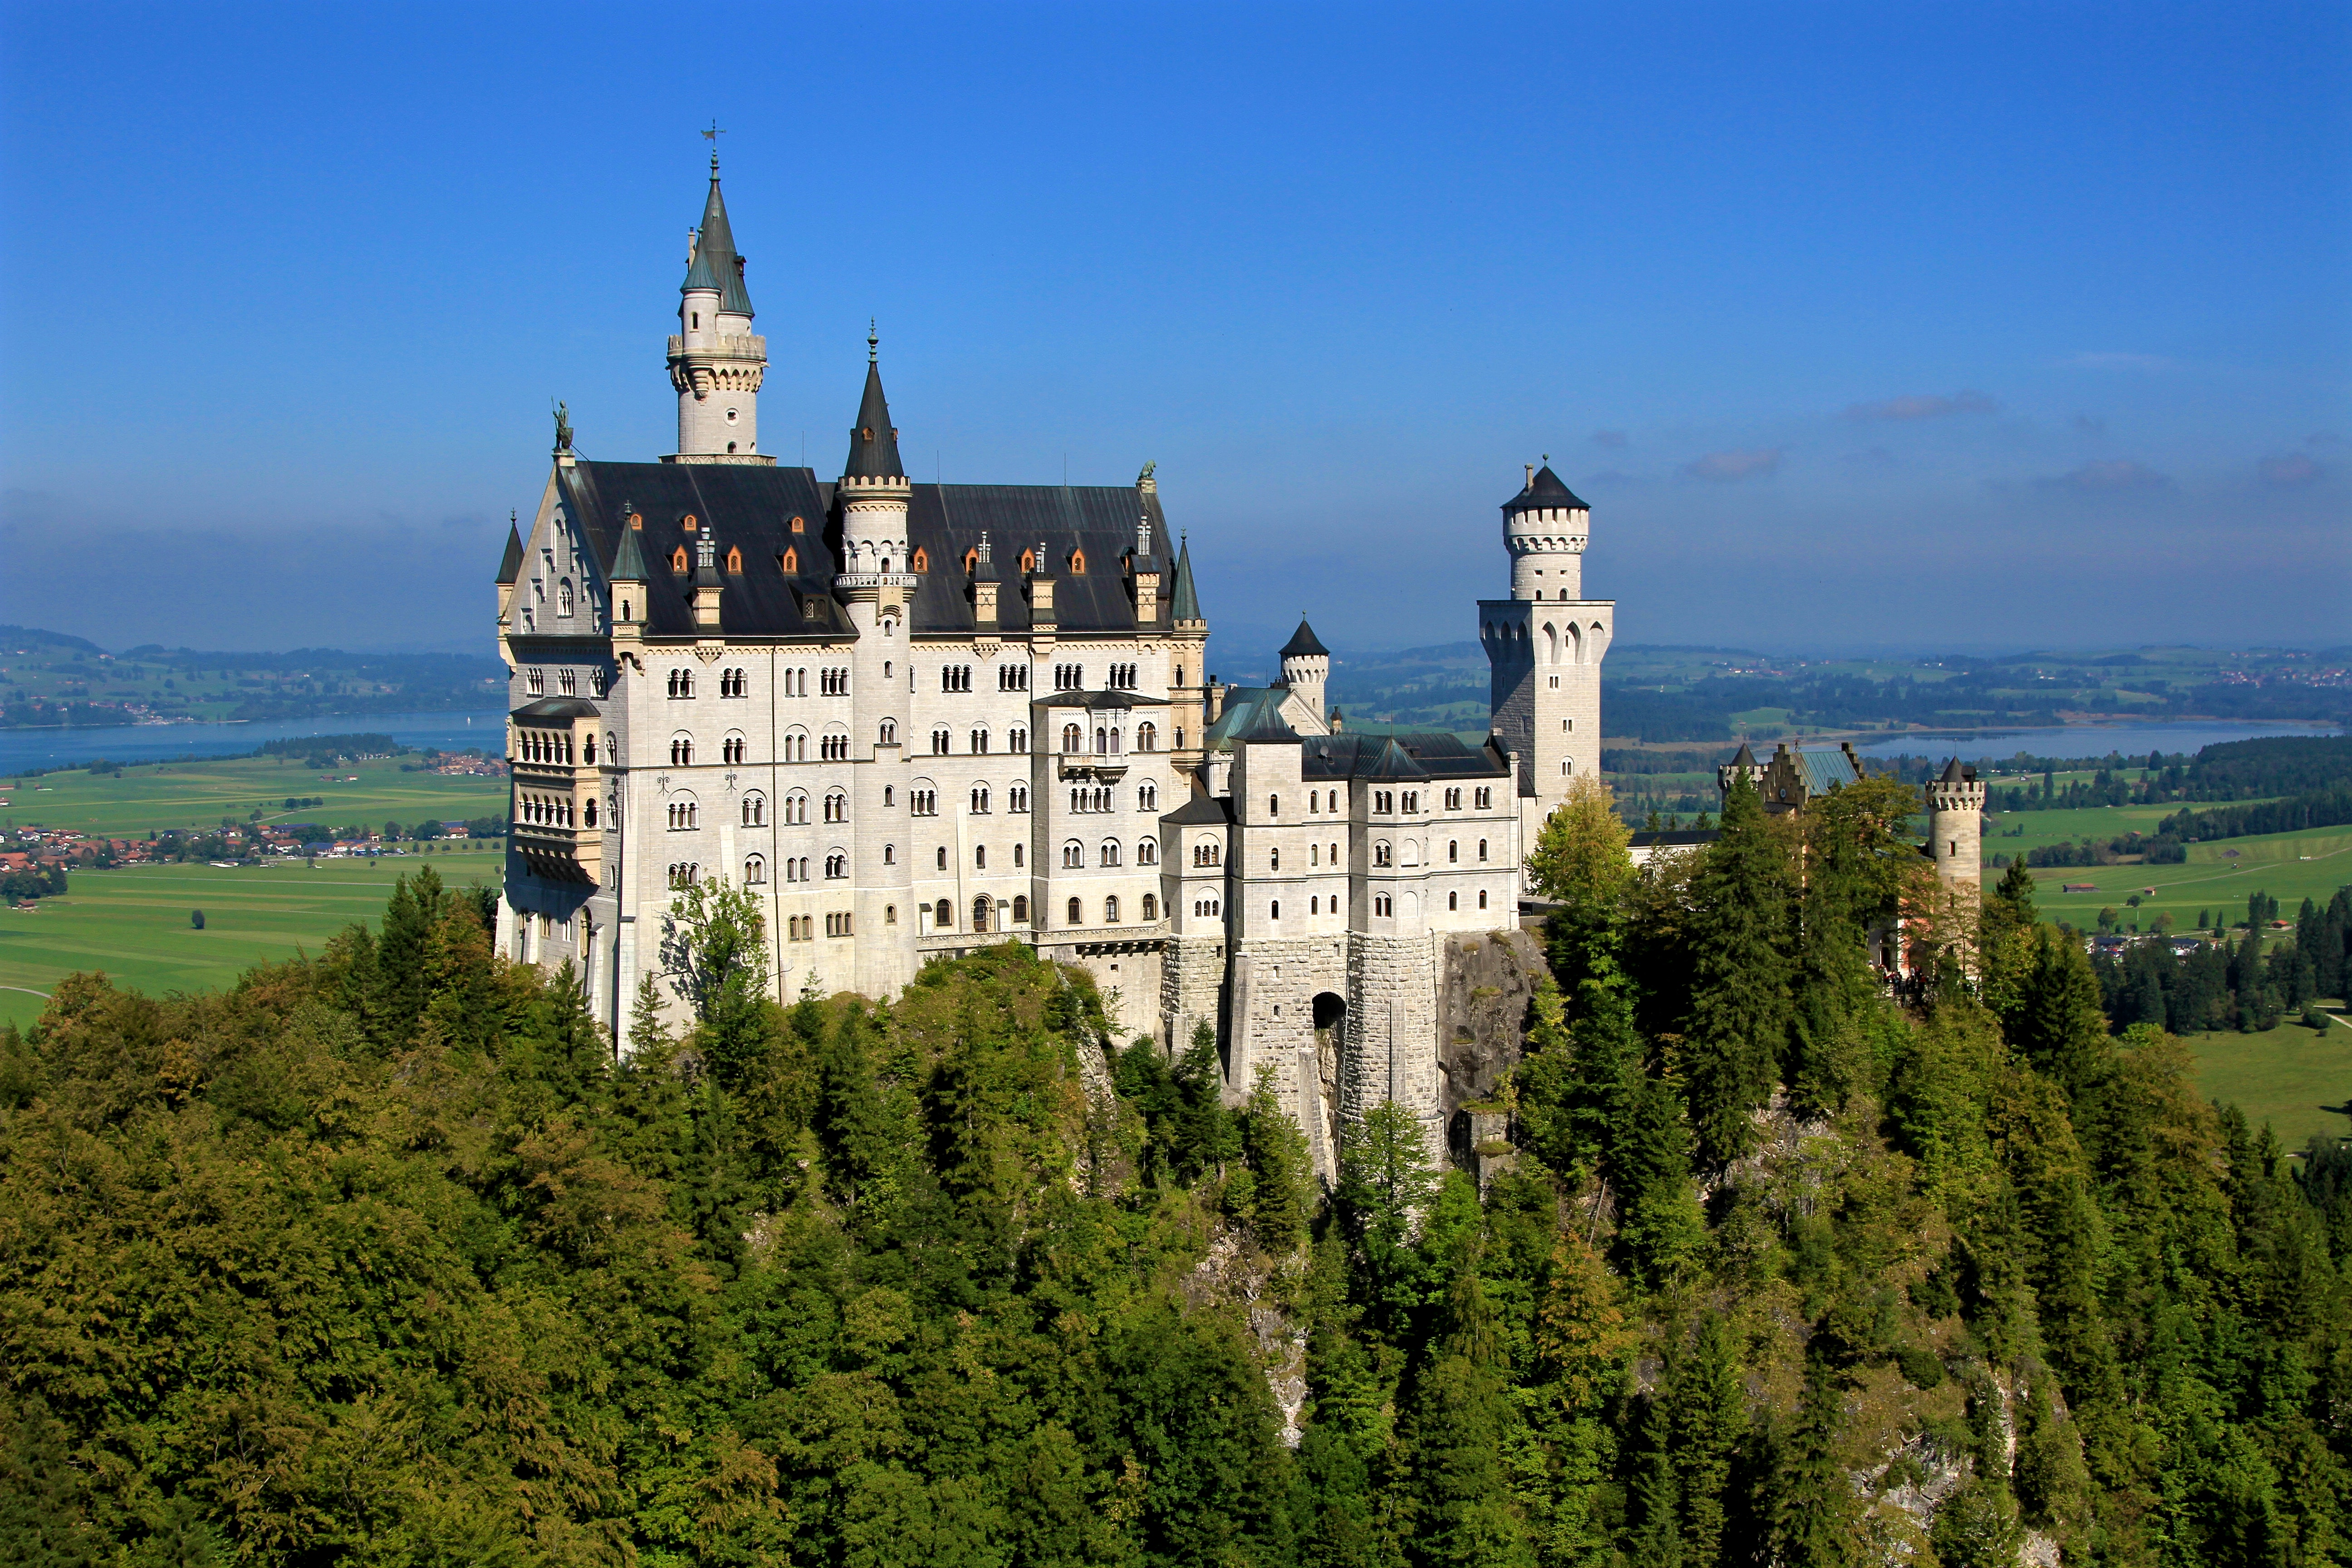 White Castle during Daytime, Architecture, Building, Castle, Fortification, HQ Photo